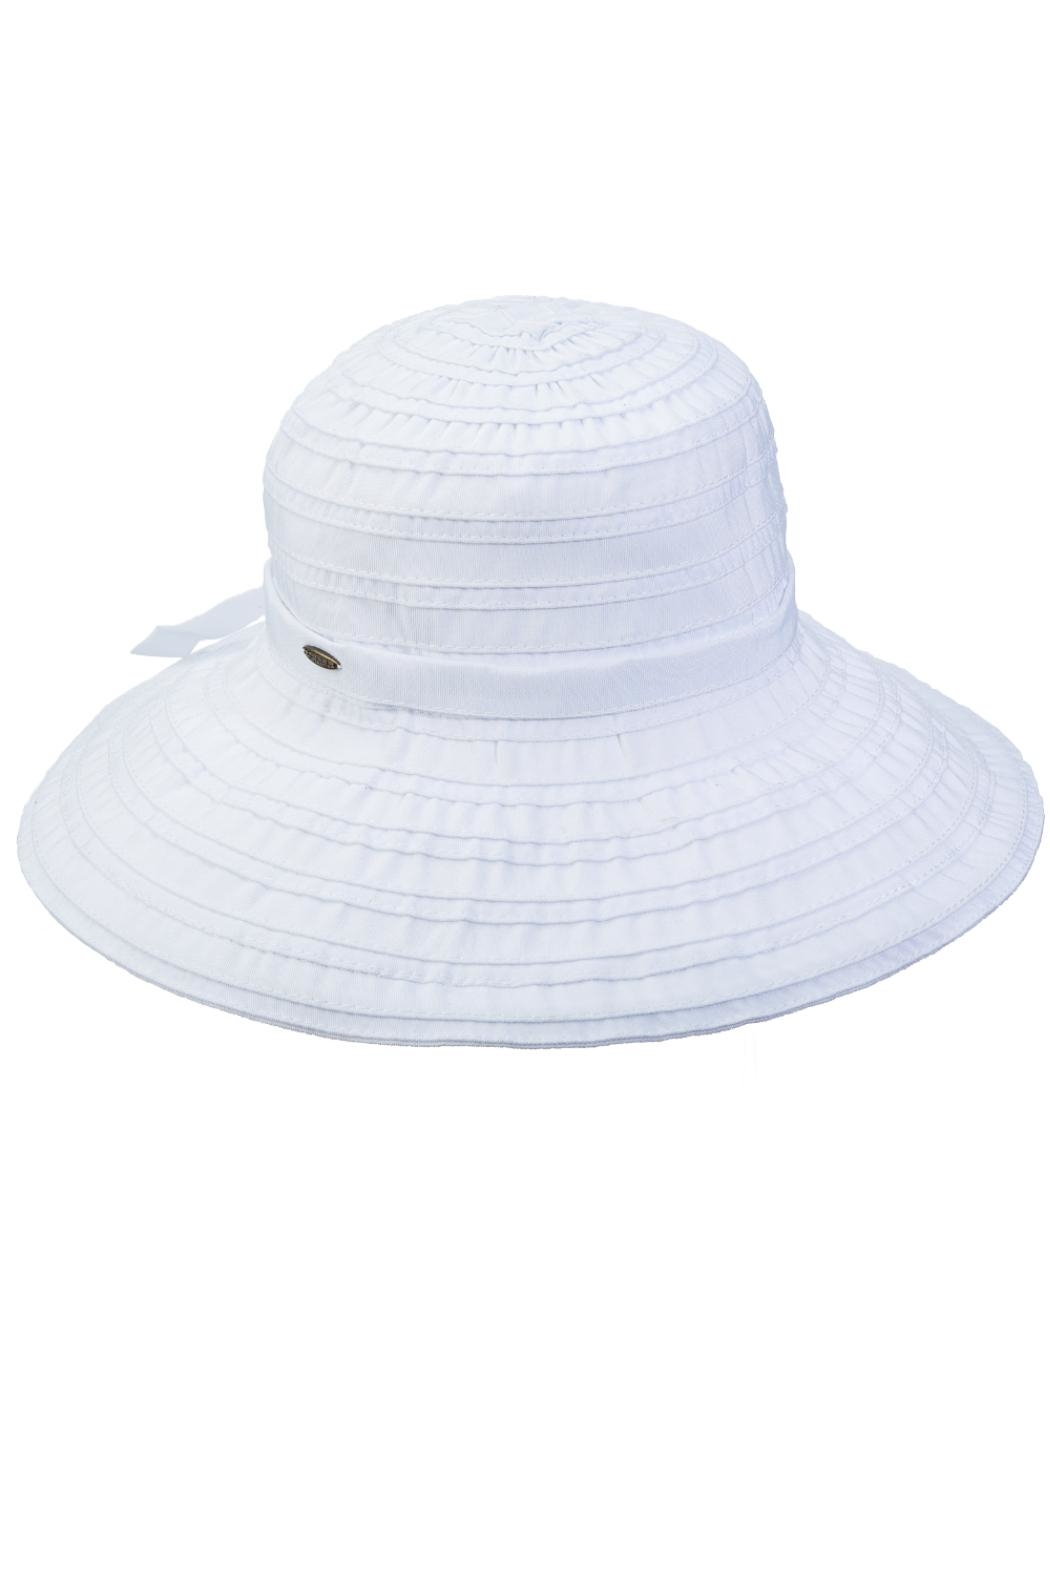 Dorfman Pacific Wide Brimmed Hat - Front Cropped Image